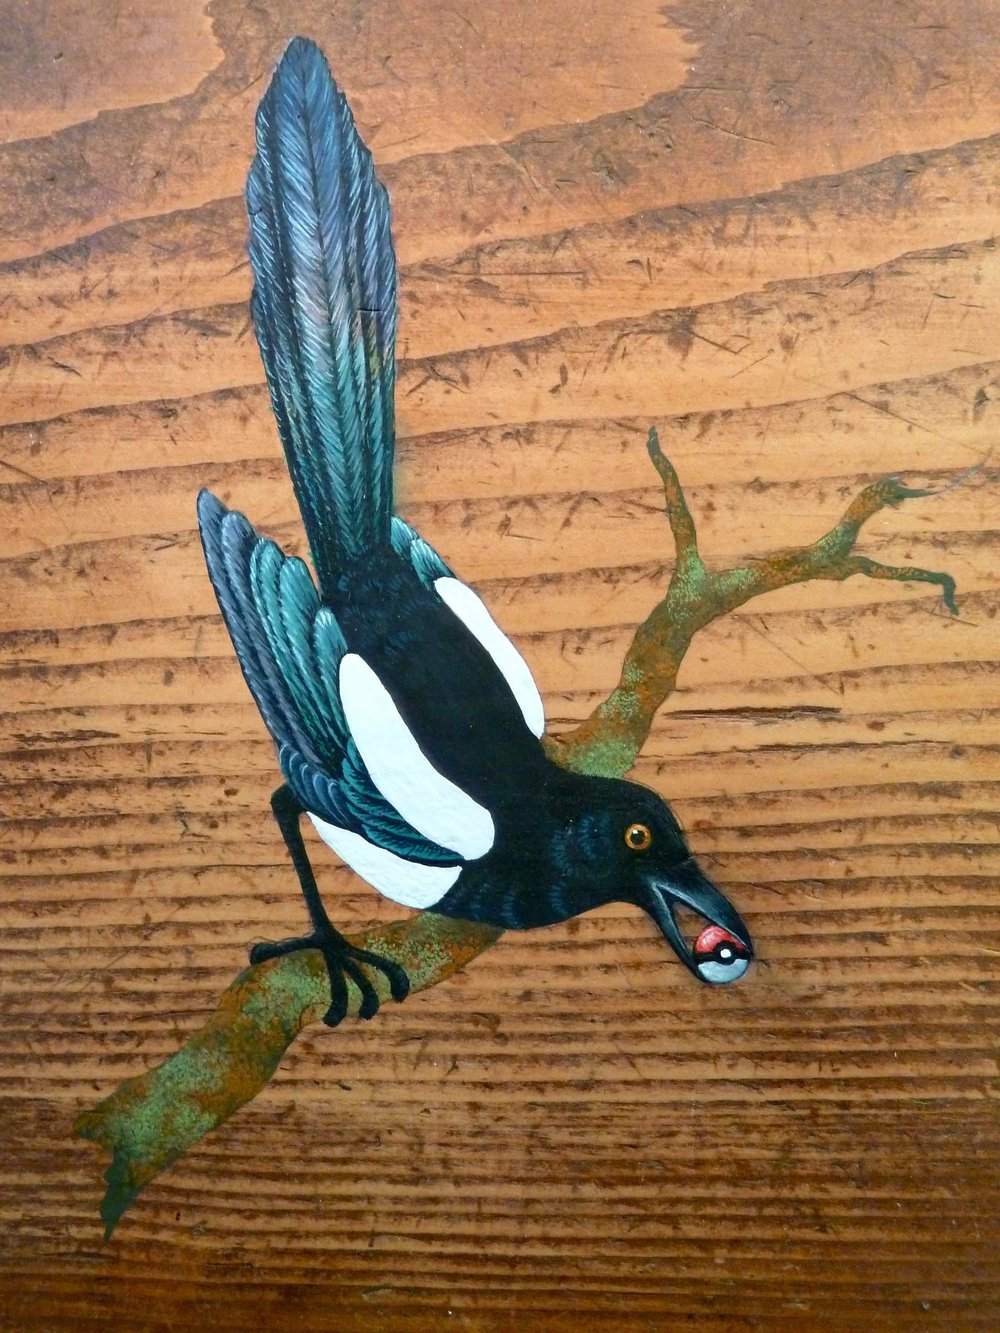 Magpie  Pica pica  (gouache on wood), 2010.   Something tells me it's all happening at the Zoo  , Kevin Kavanagh Gallery